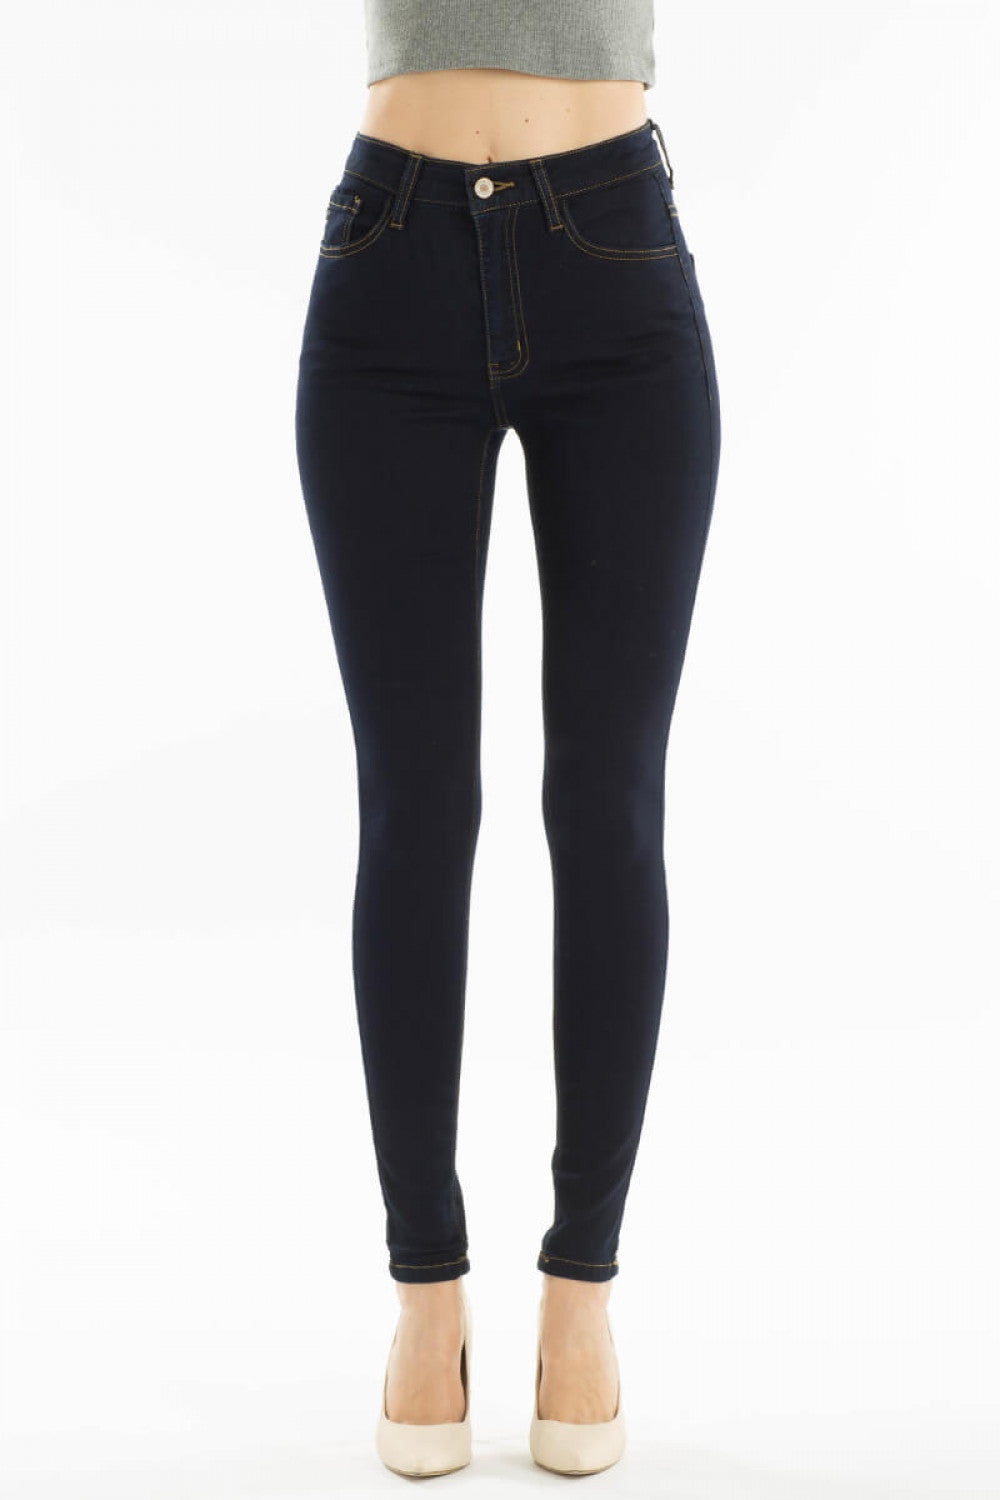 HIGH RISE SUPER SKINNY JEANS - Erin Edit Shop